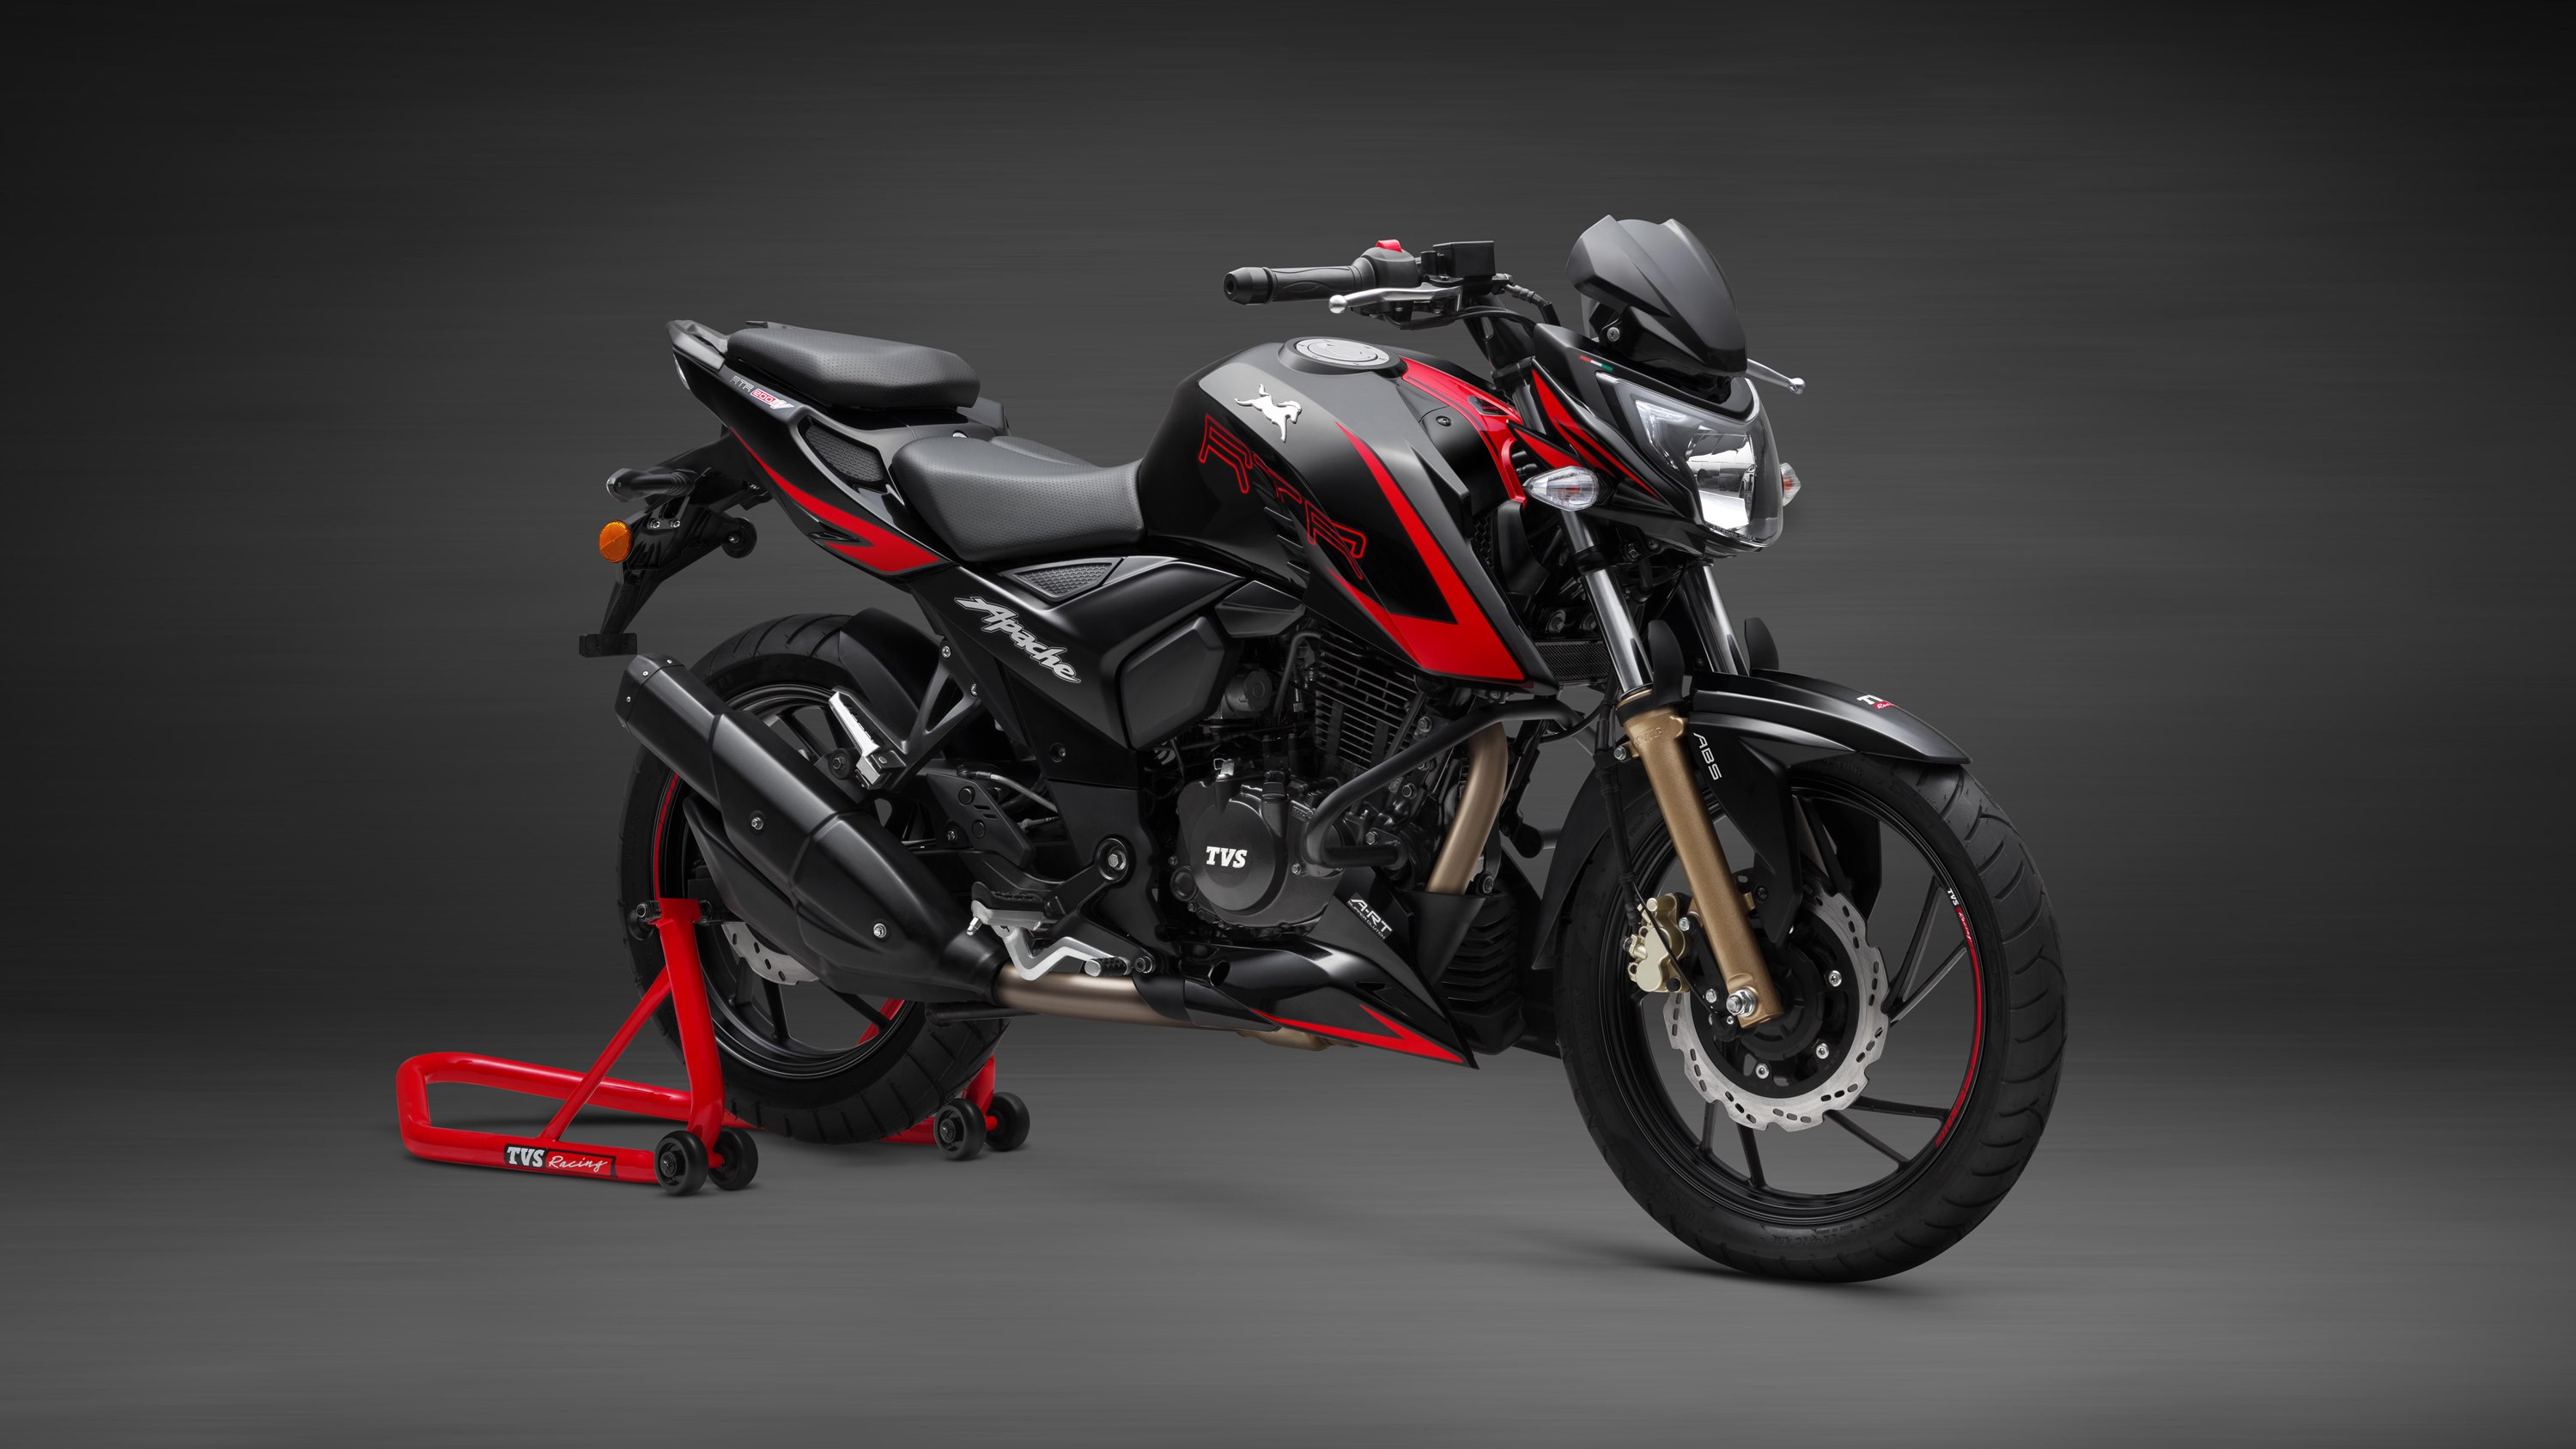 Apache RTR 200 4V Race Edition 2.0 Launched With Slipper